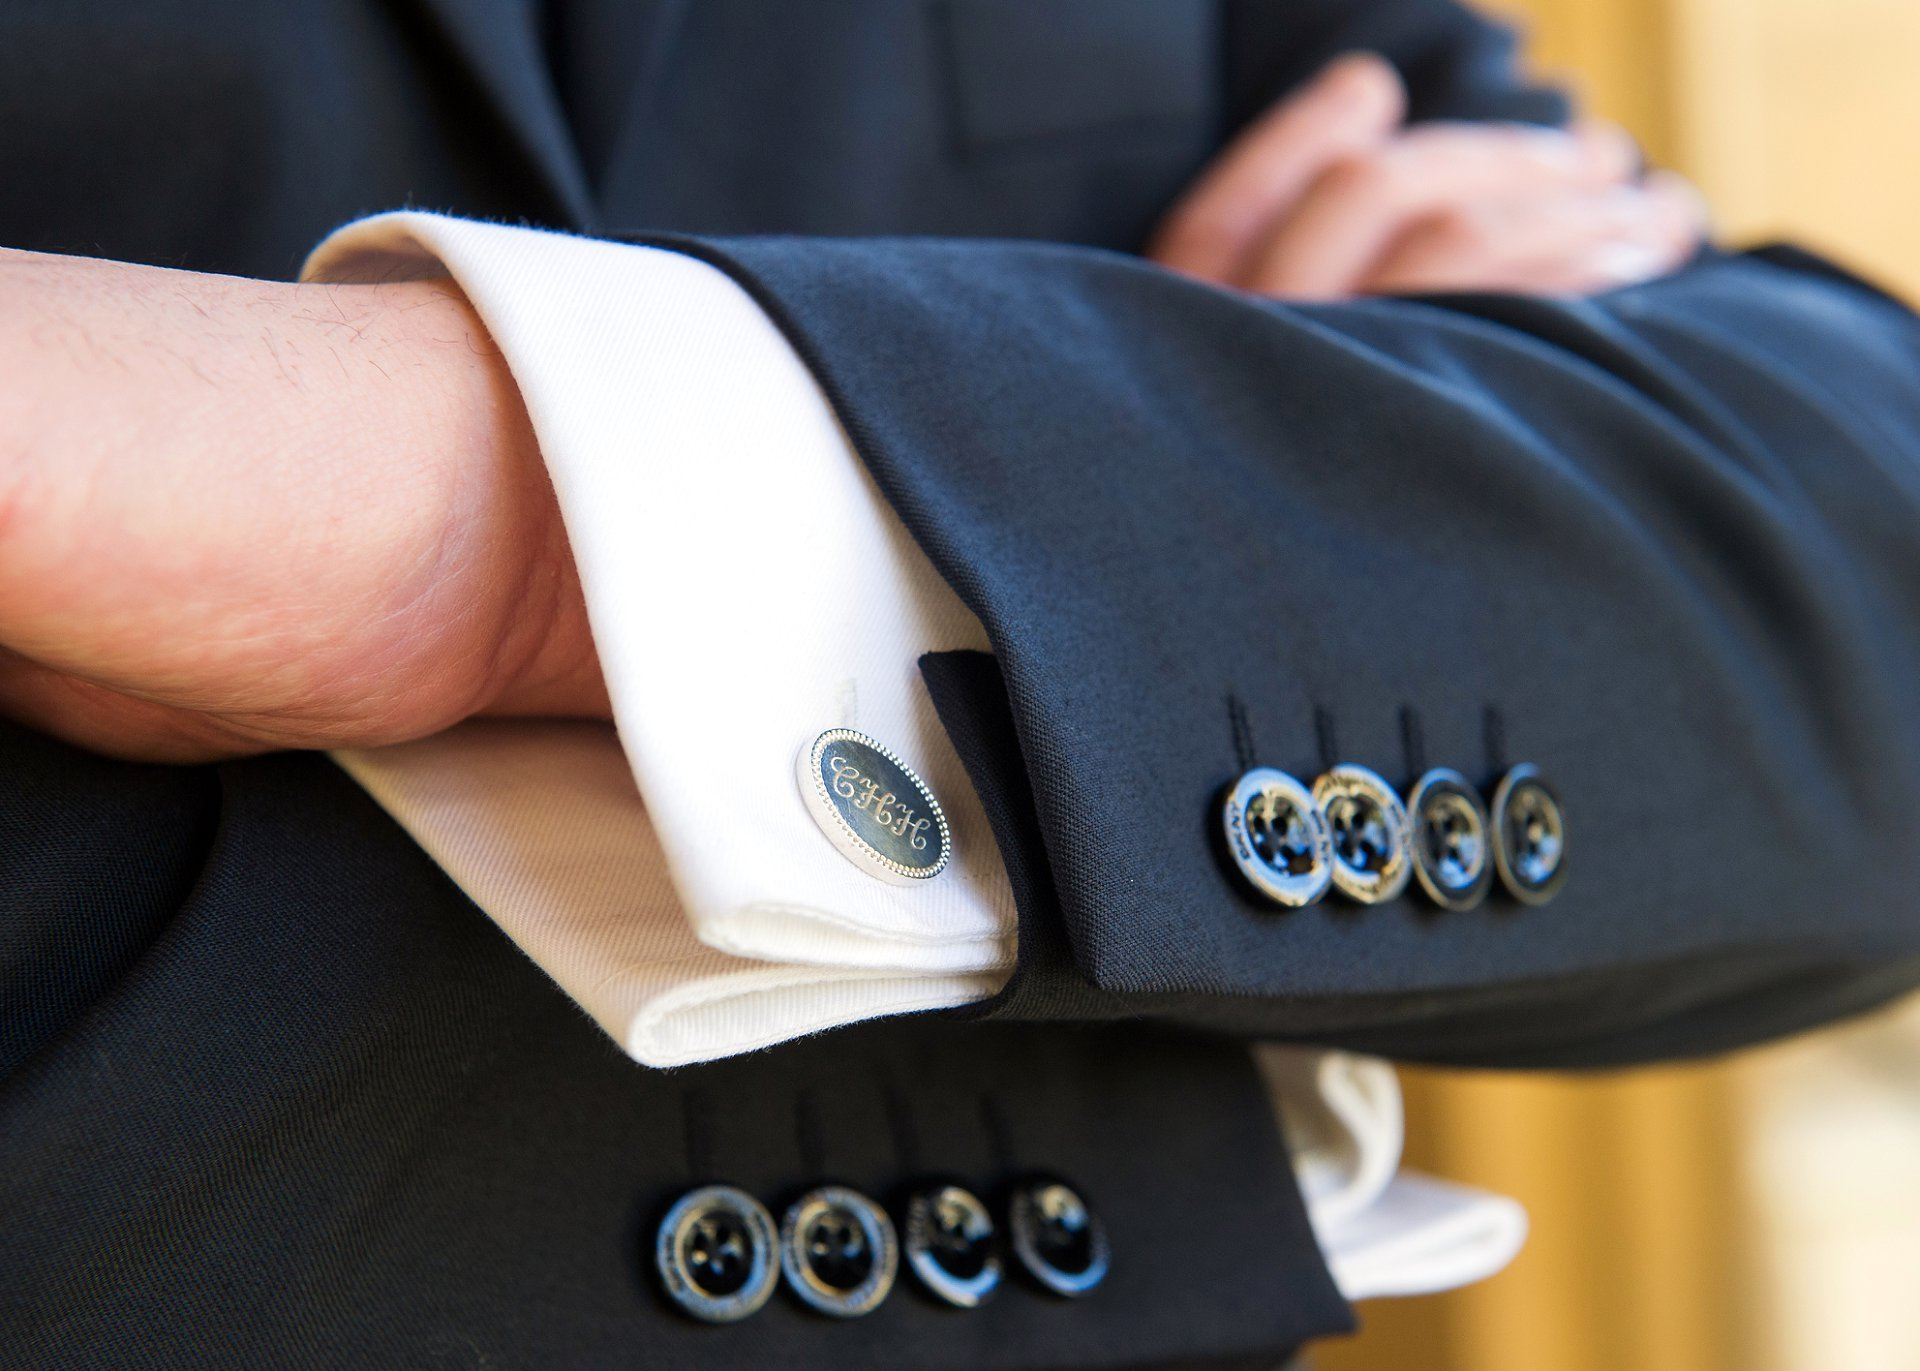 a groom crosses his arms to show cufflinks with his initials on his wedding day in london